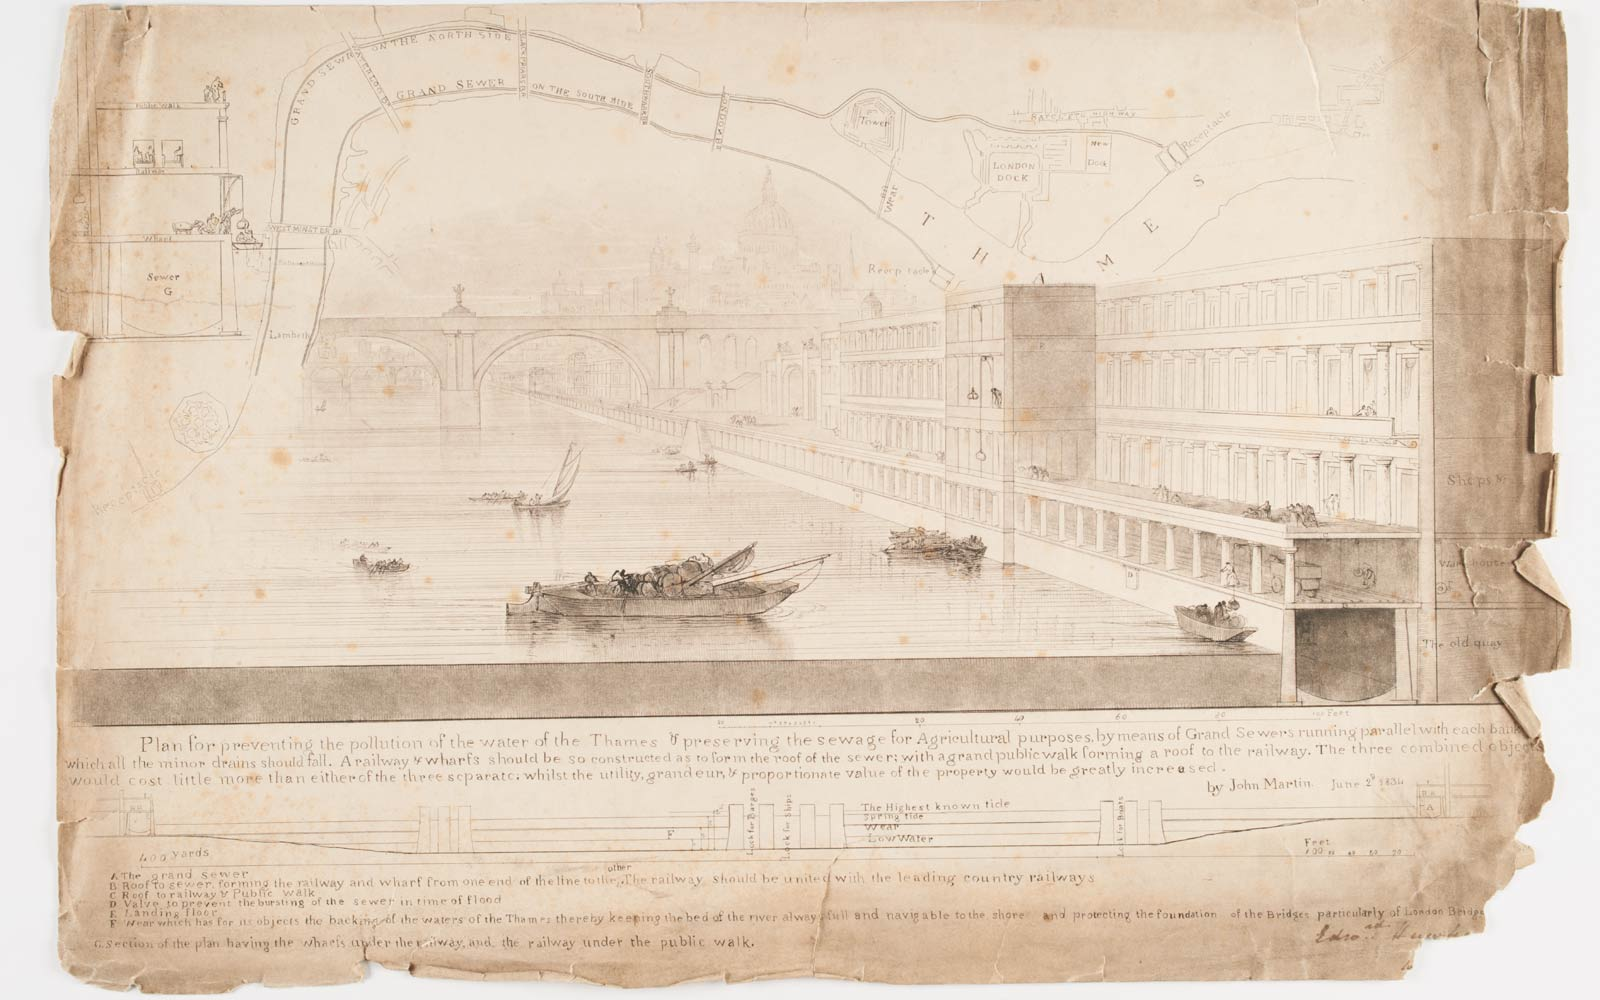 Plans by the artist John Martin for a solution to London's drainage issue.